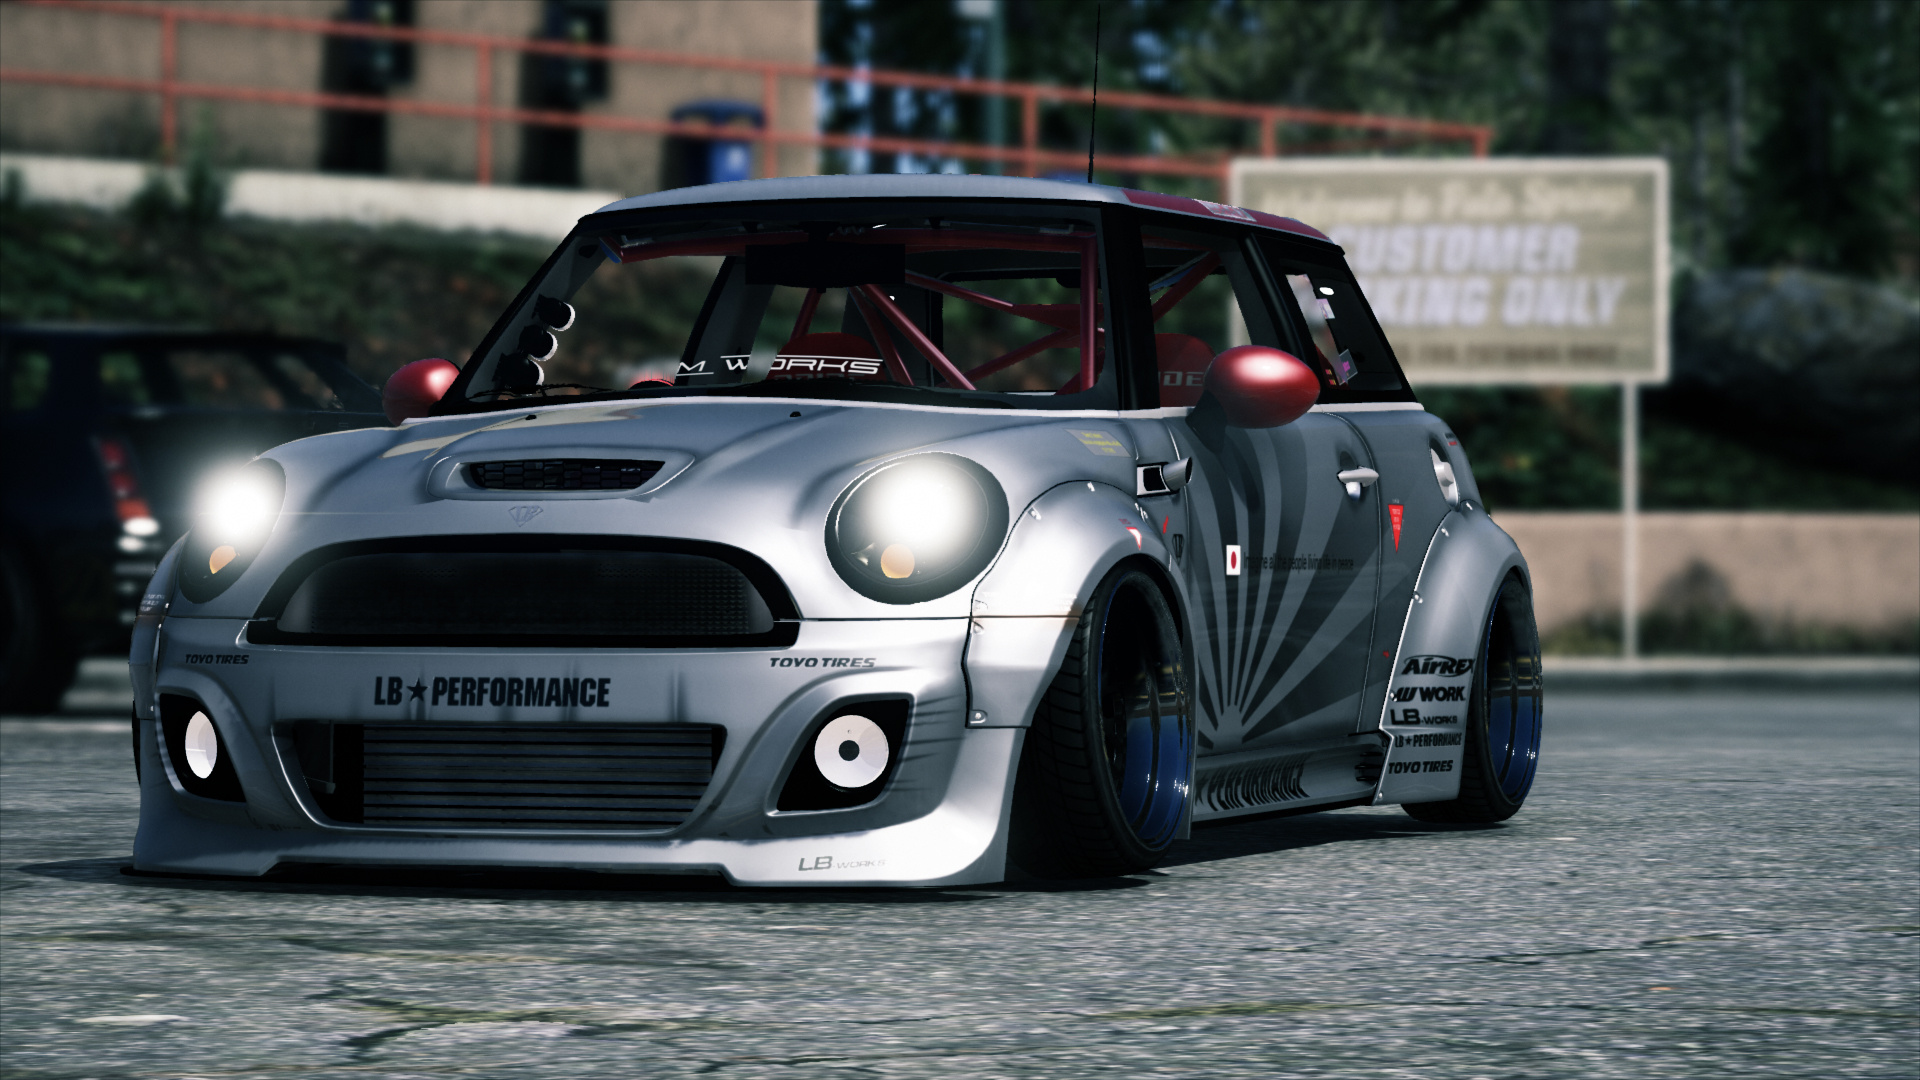 mini cooper r56 gp liberty walk add on extras template. Black Bedroom Furniture Sets. Home Design Ideas